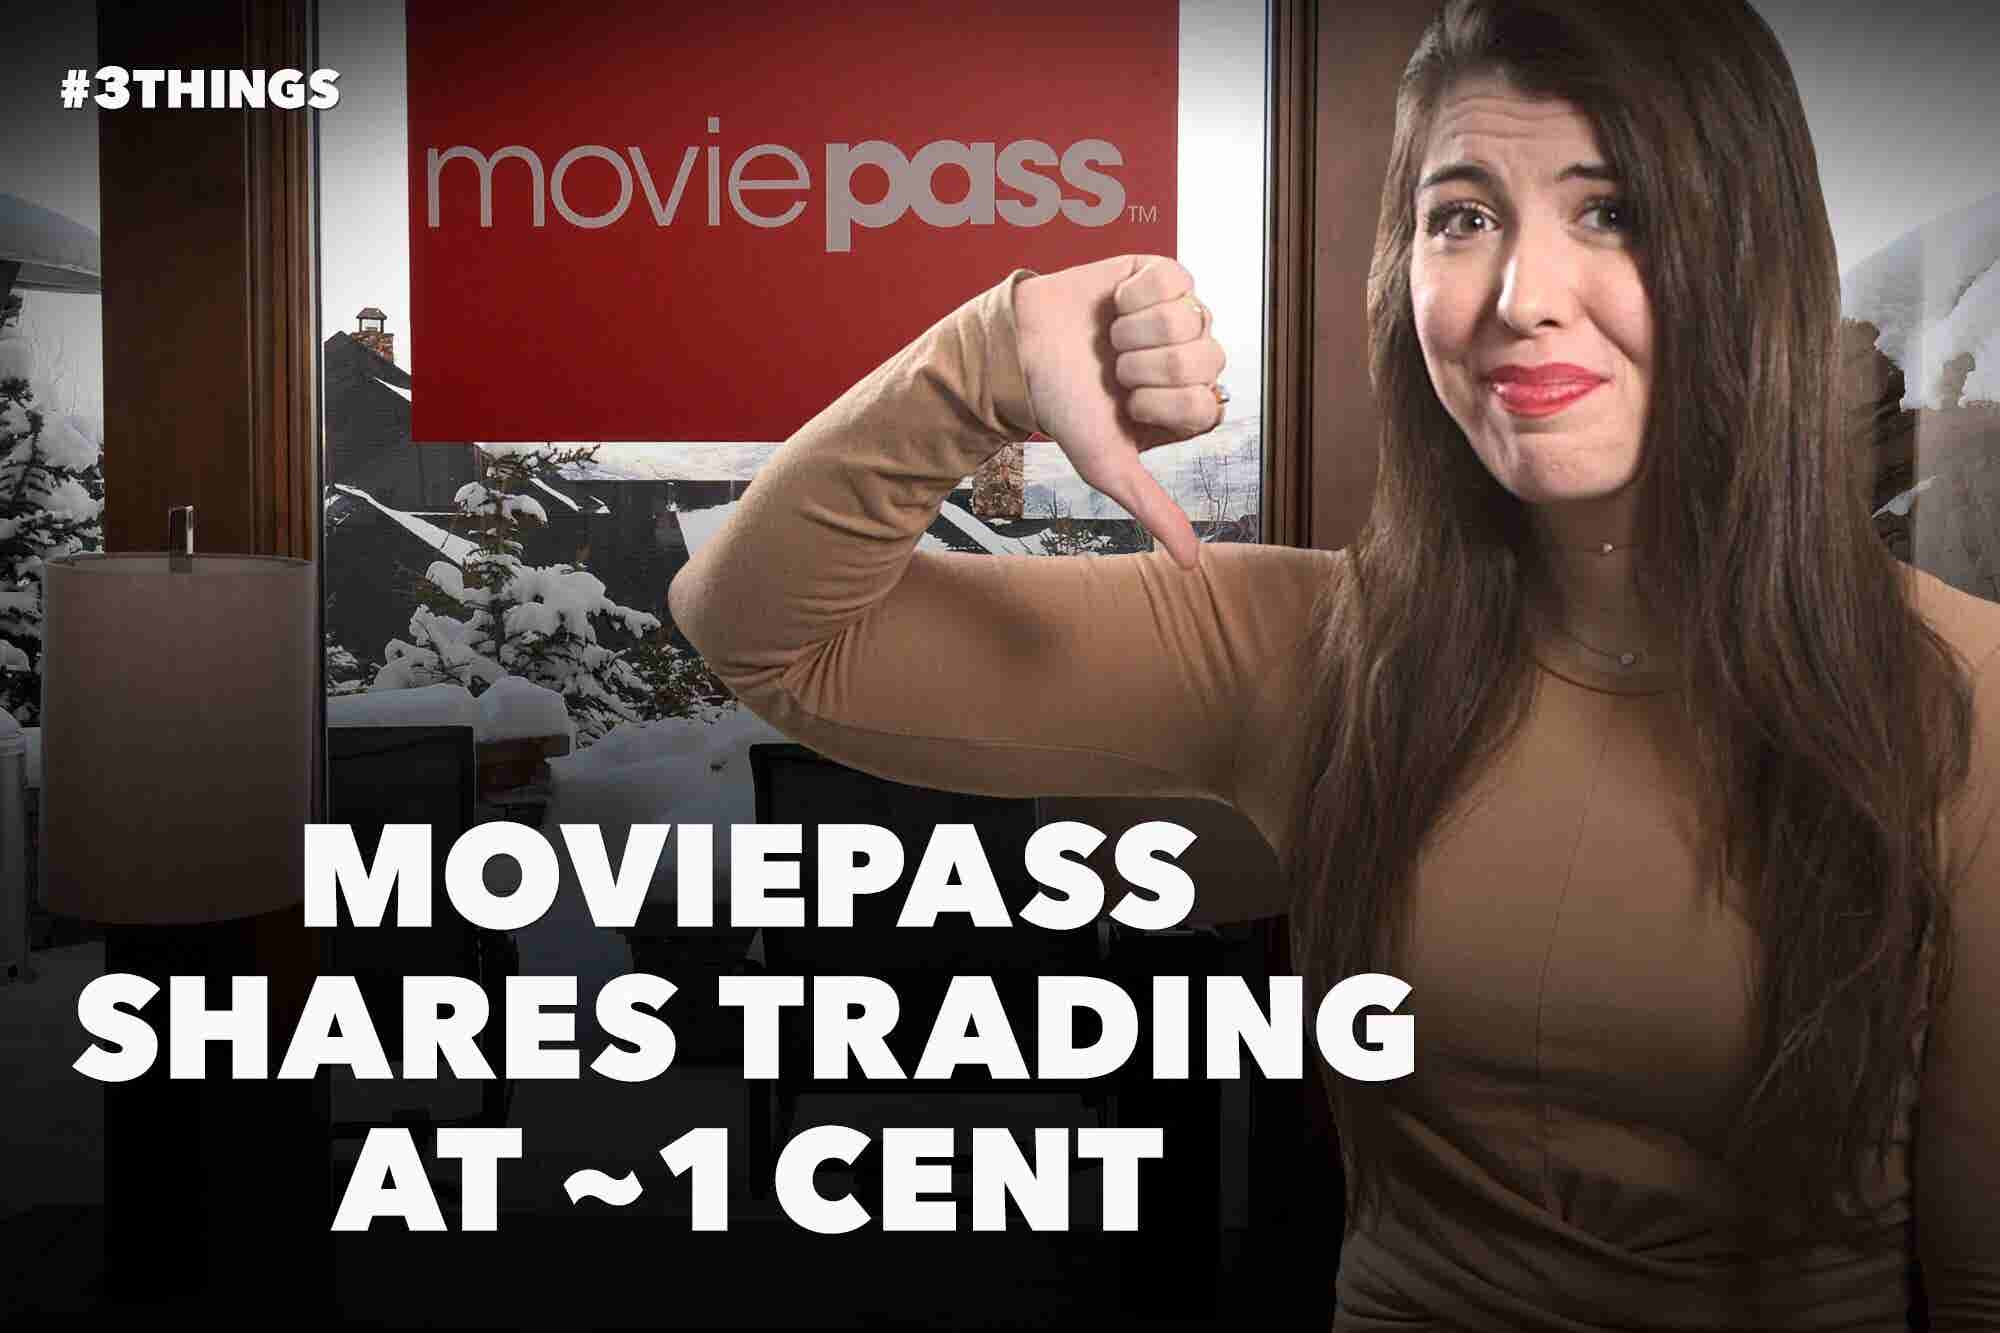 MoviePass Shares Trading at Just Over 1 Cent; Google+ Shuts Down Early...